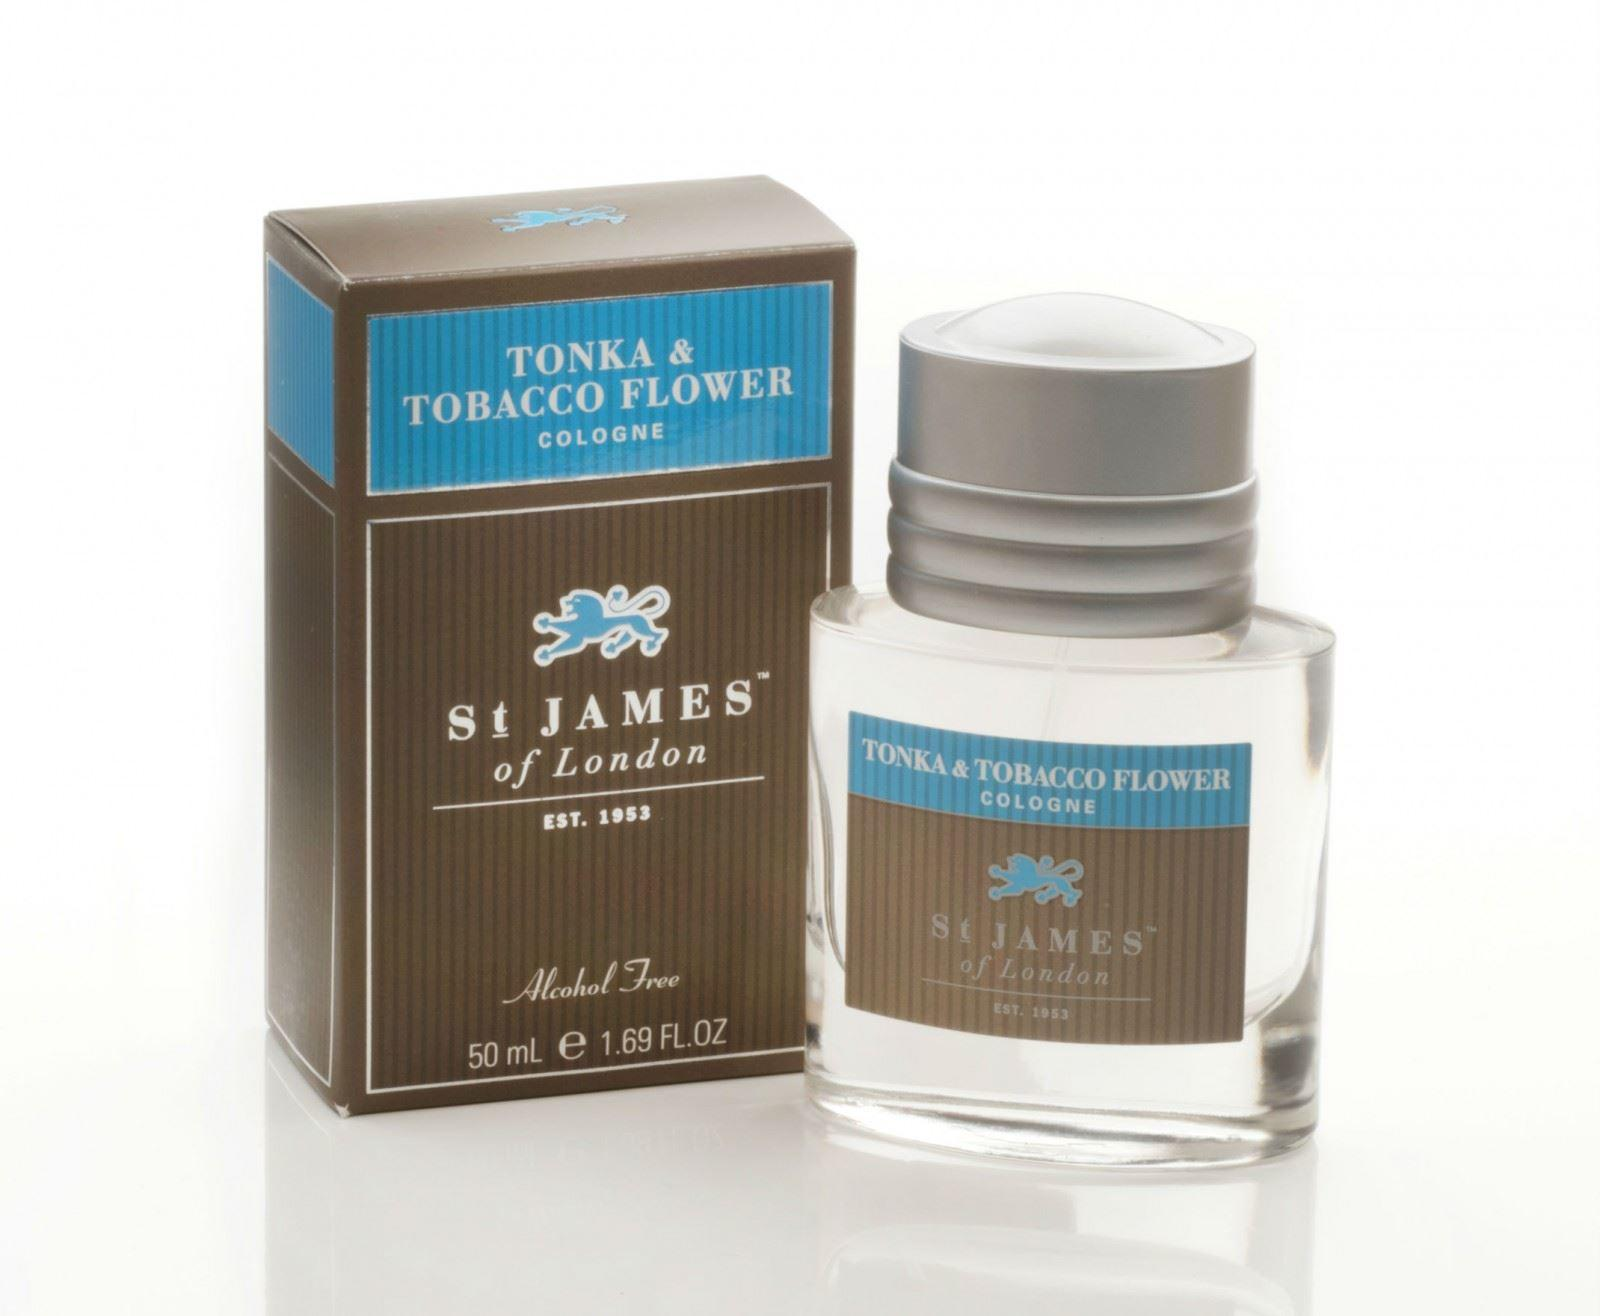 St James of London Tonka & Tobacco Flower Cologne